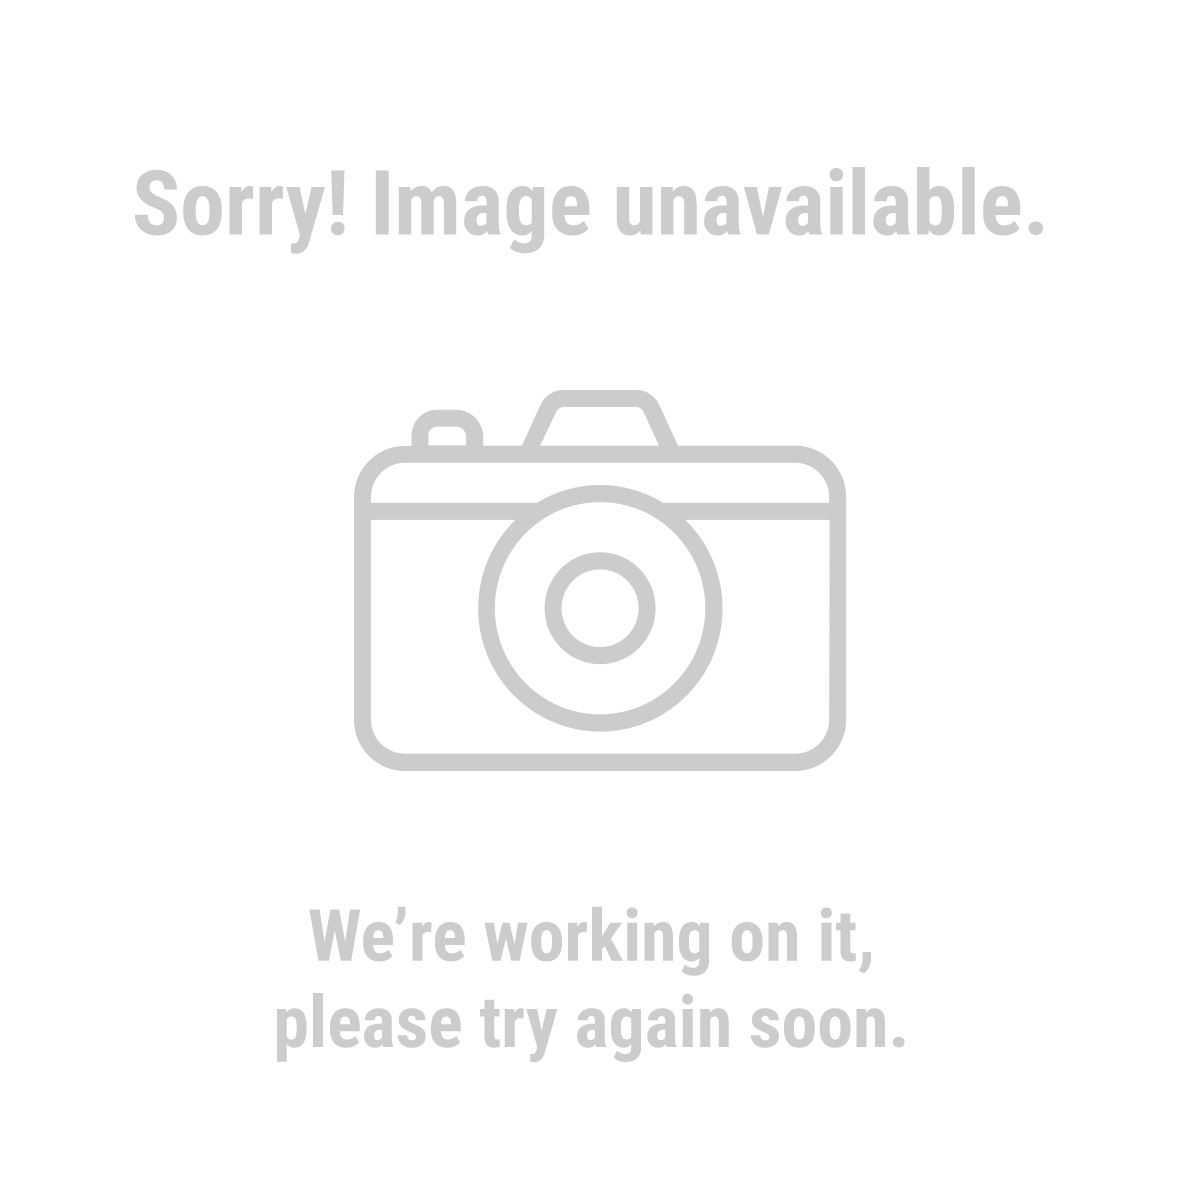 "ShelterLogic 68765 10 ft. x 7 ft. 6"" Tilt Mount Quick Clamp Canopy with Tan Cover"